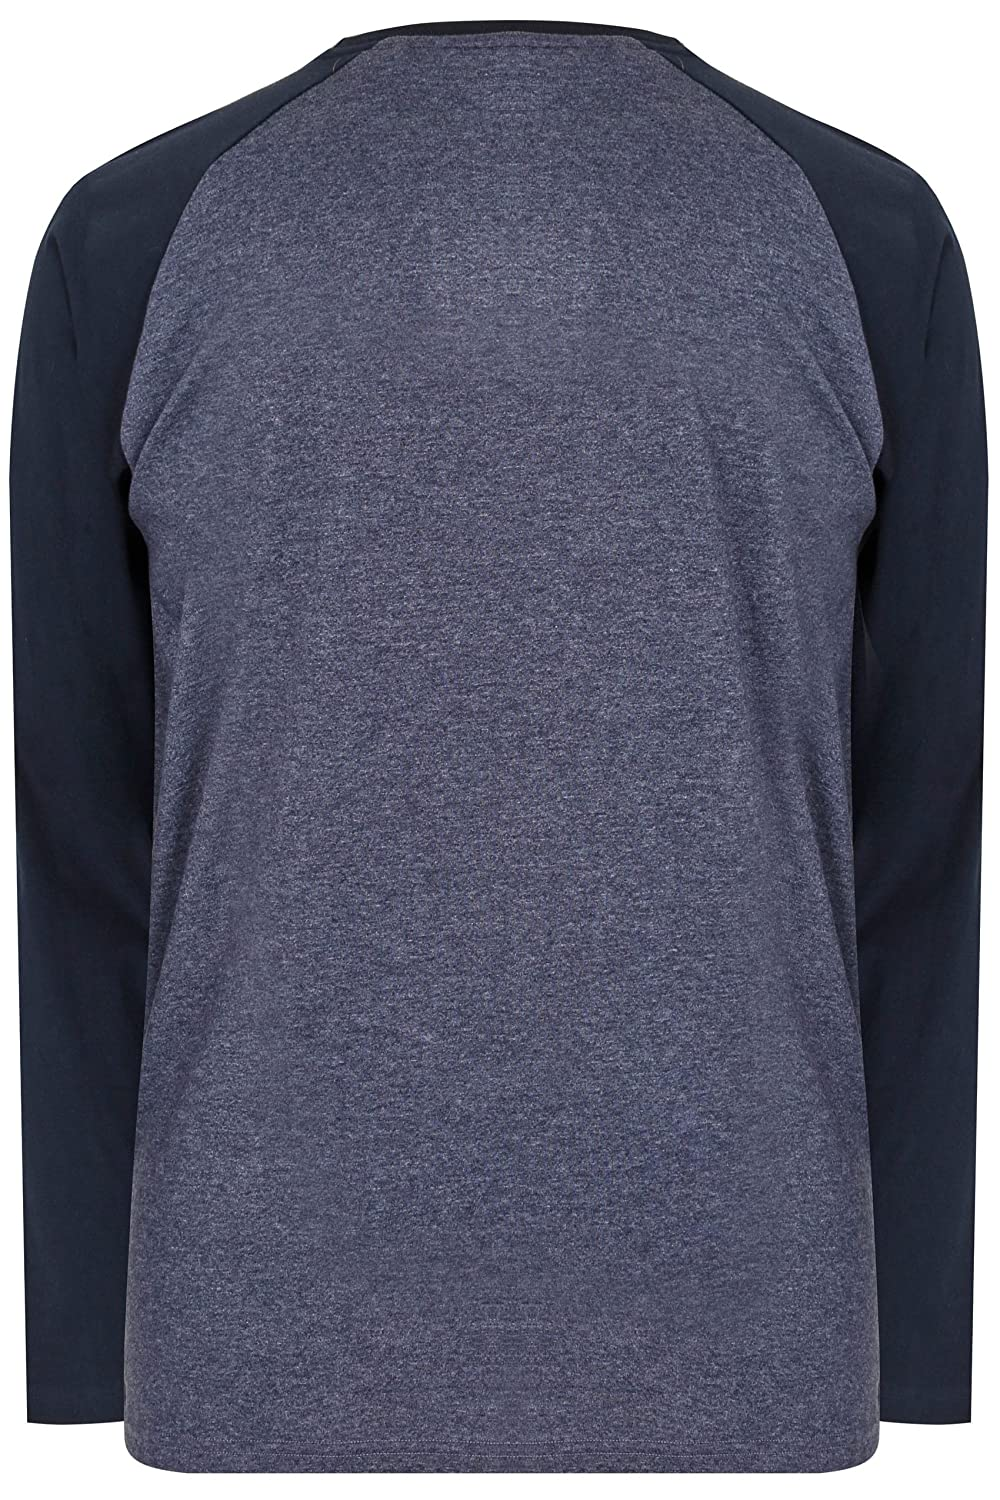 f86101786 Badrhino Men's Big and Tall Denim Blue Long Sleeve T-Shirt with Logo, Size  L to 8XL: Amazon.co.uk: Clothing